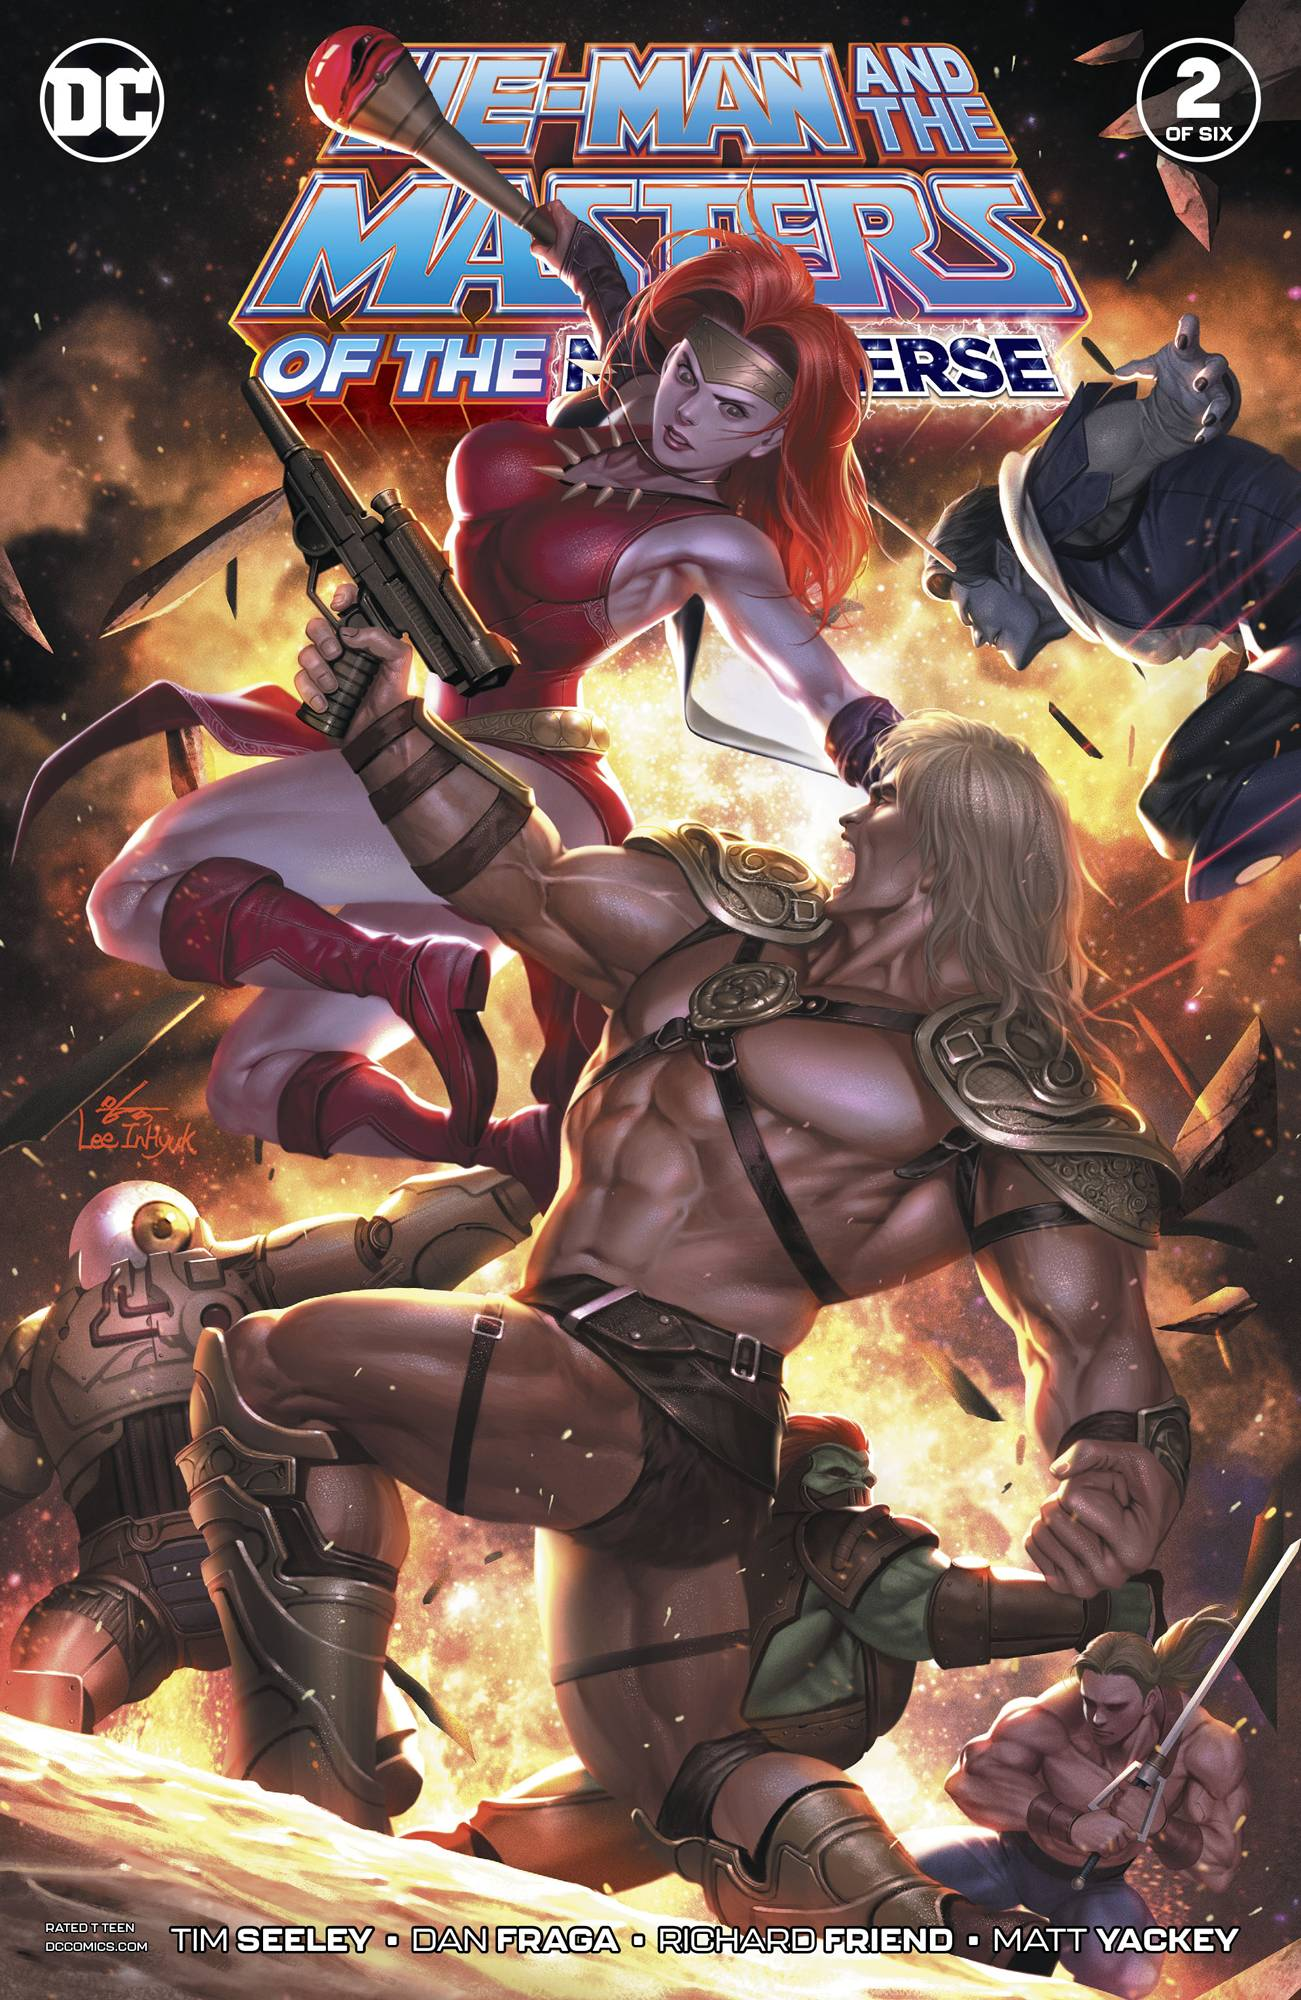 He-Man and the Masters Of The Multiverse #2 (2019)